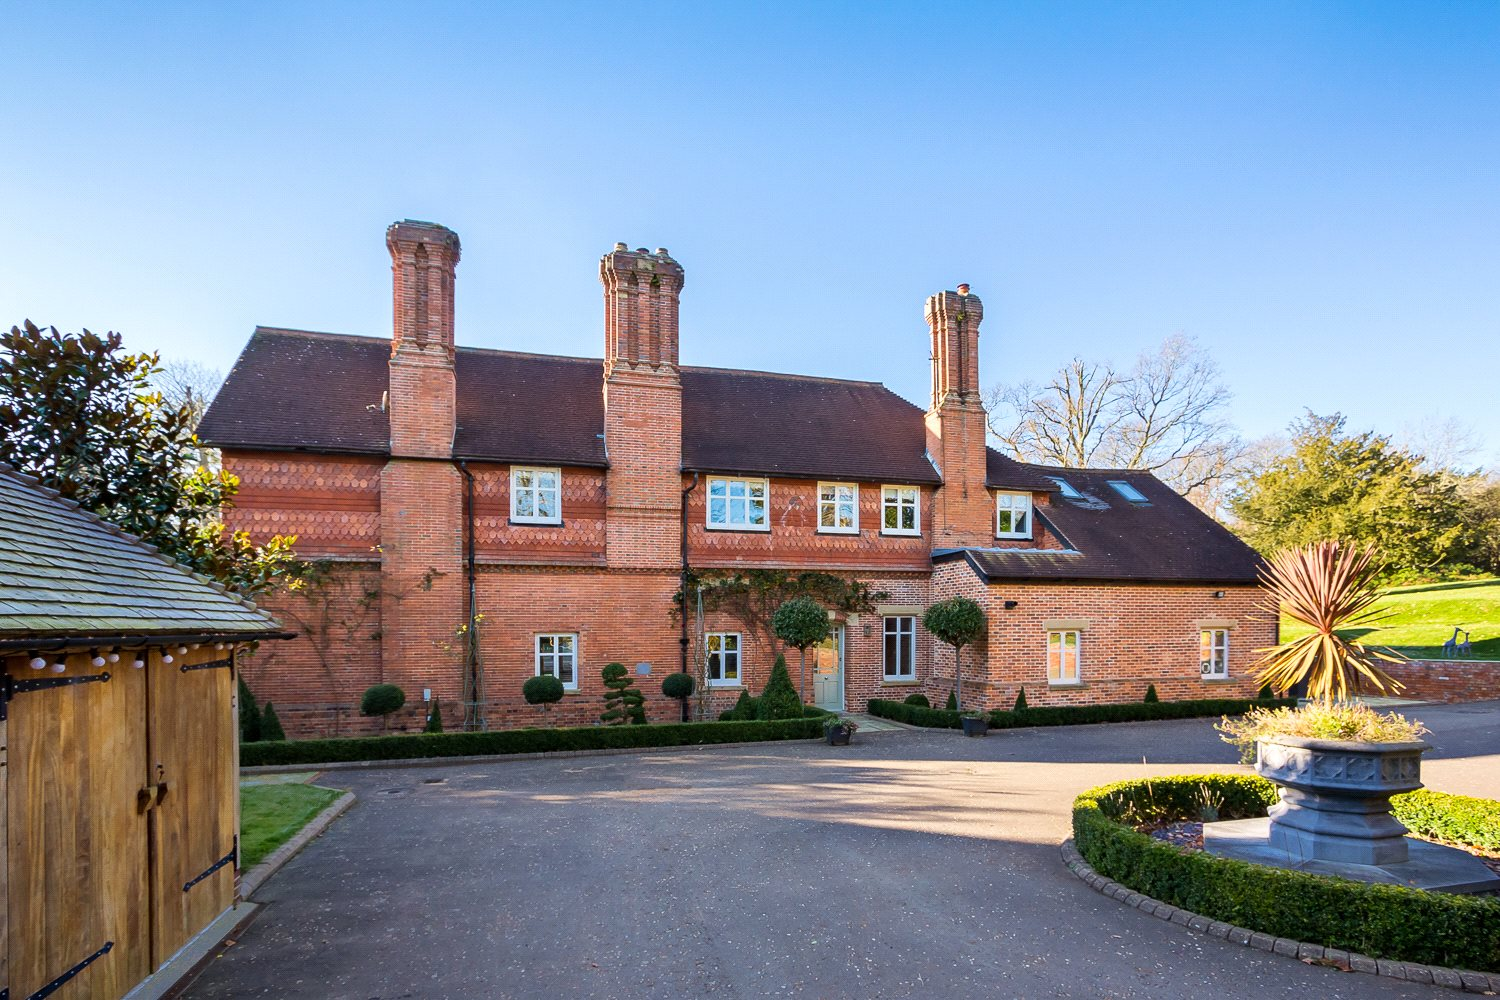 Частный дом для того Продажа на Crawley Lane, Balcombe, Haywards Heath, West Sussex, RH17 Haywards Heath, Англия